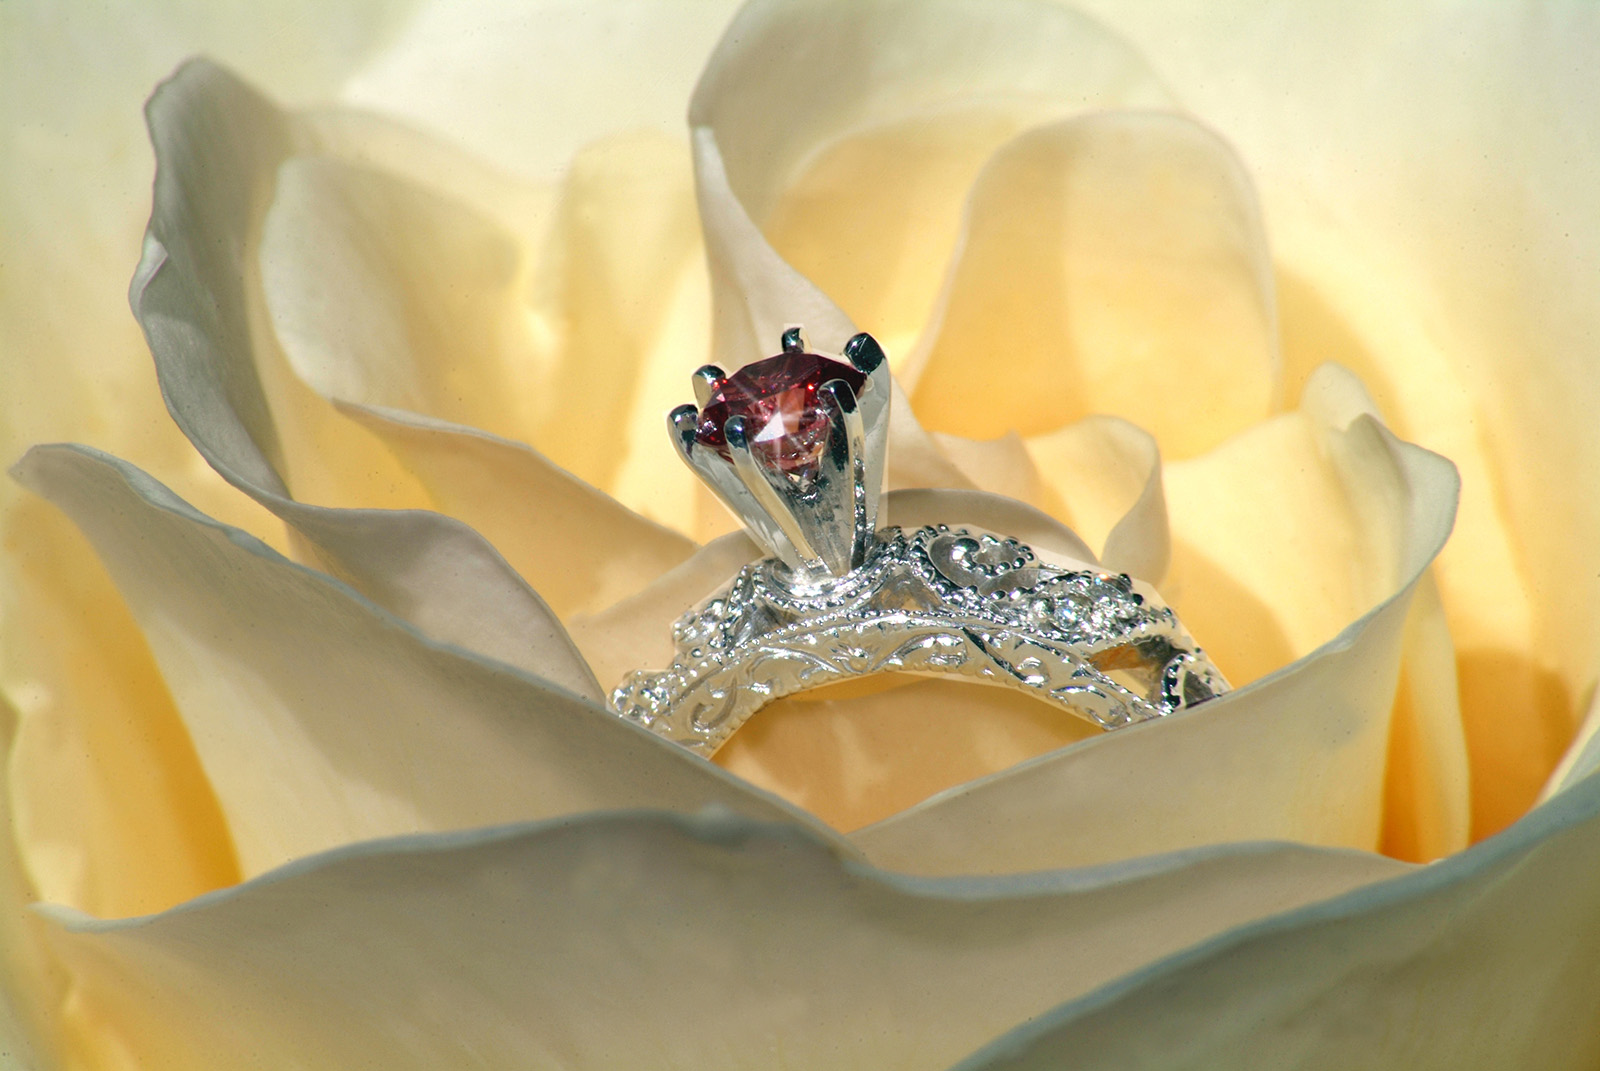 Kylea's Wedding ring in a white rose